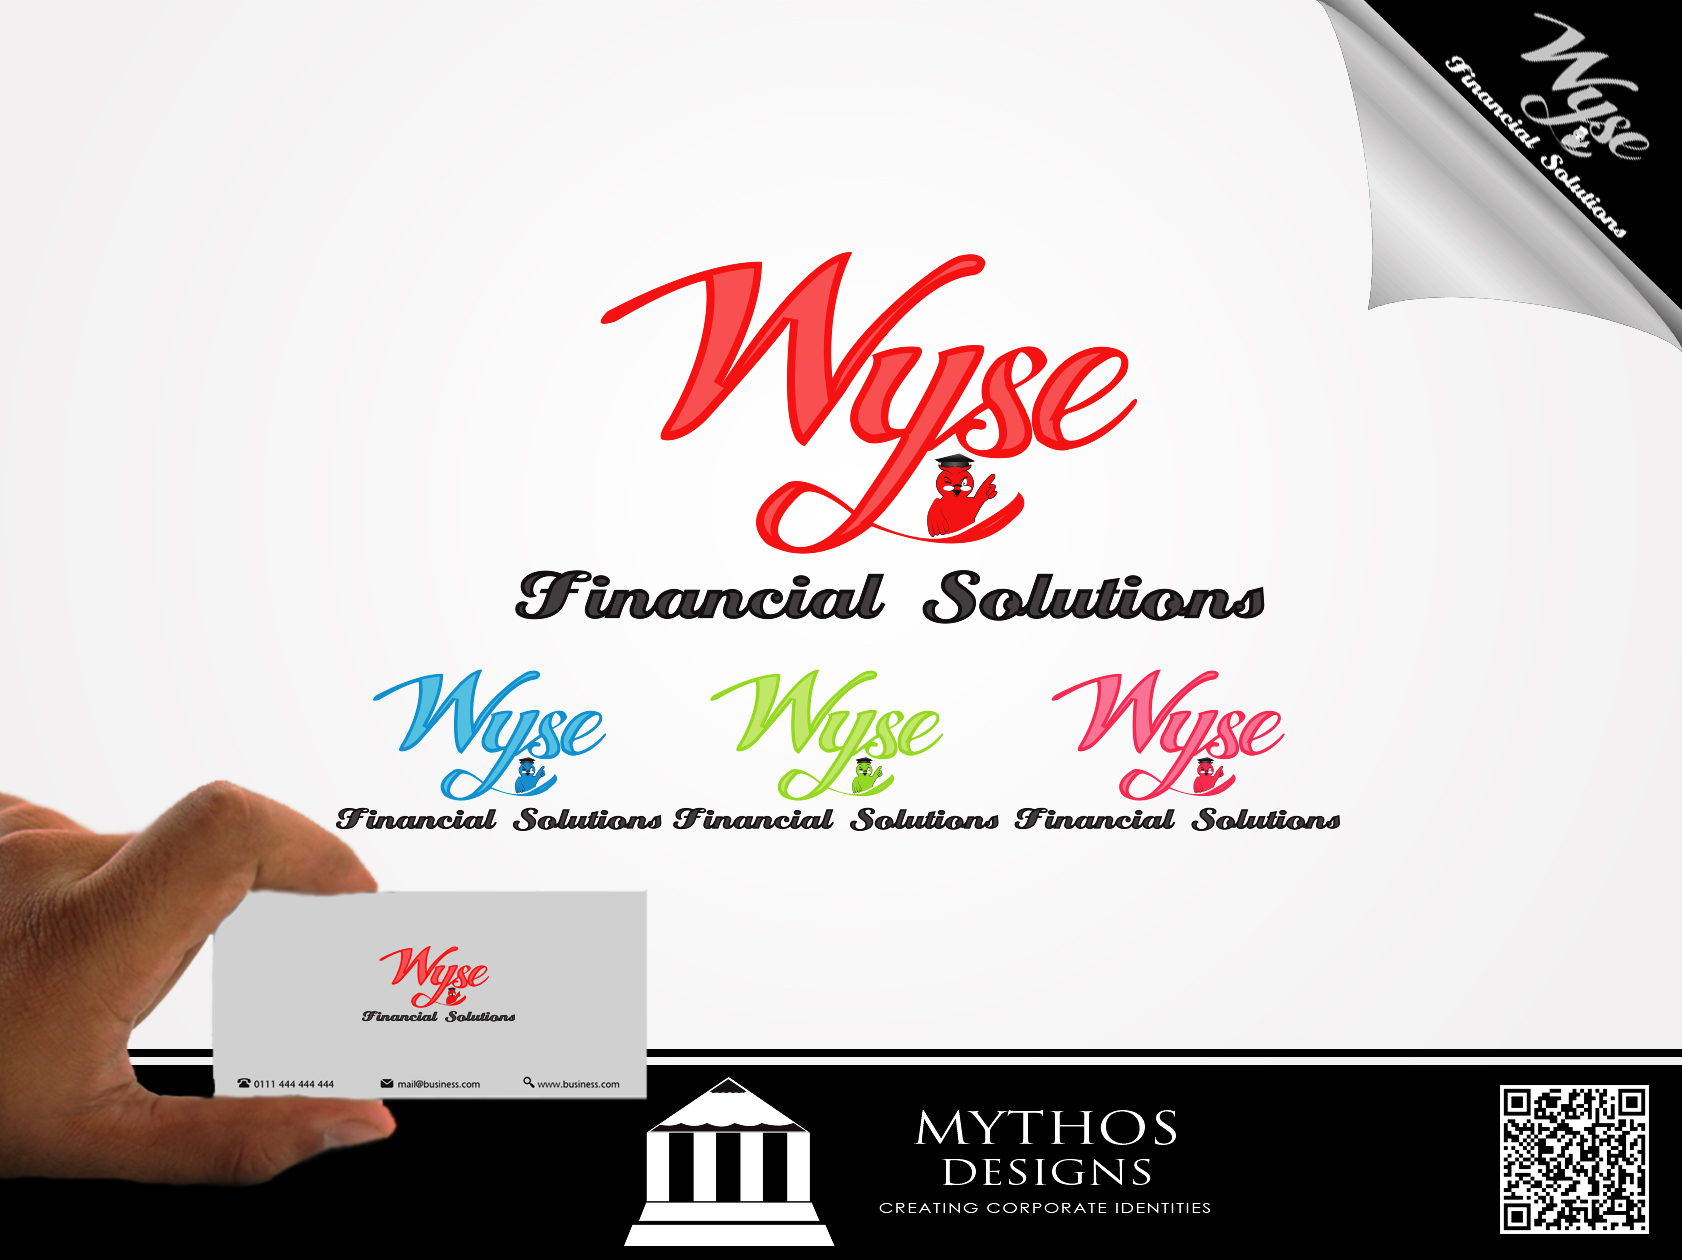 Logo Design by Mythos Designs - Entry No. 85 in the Logo Design Contest Fun Logo Design for Wyse Financial Solutions.